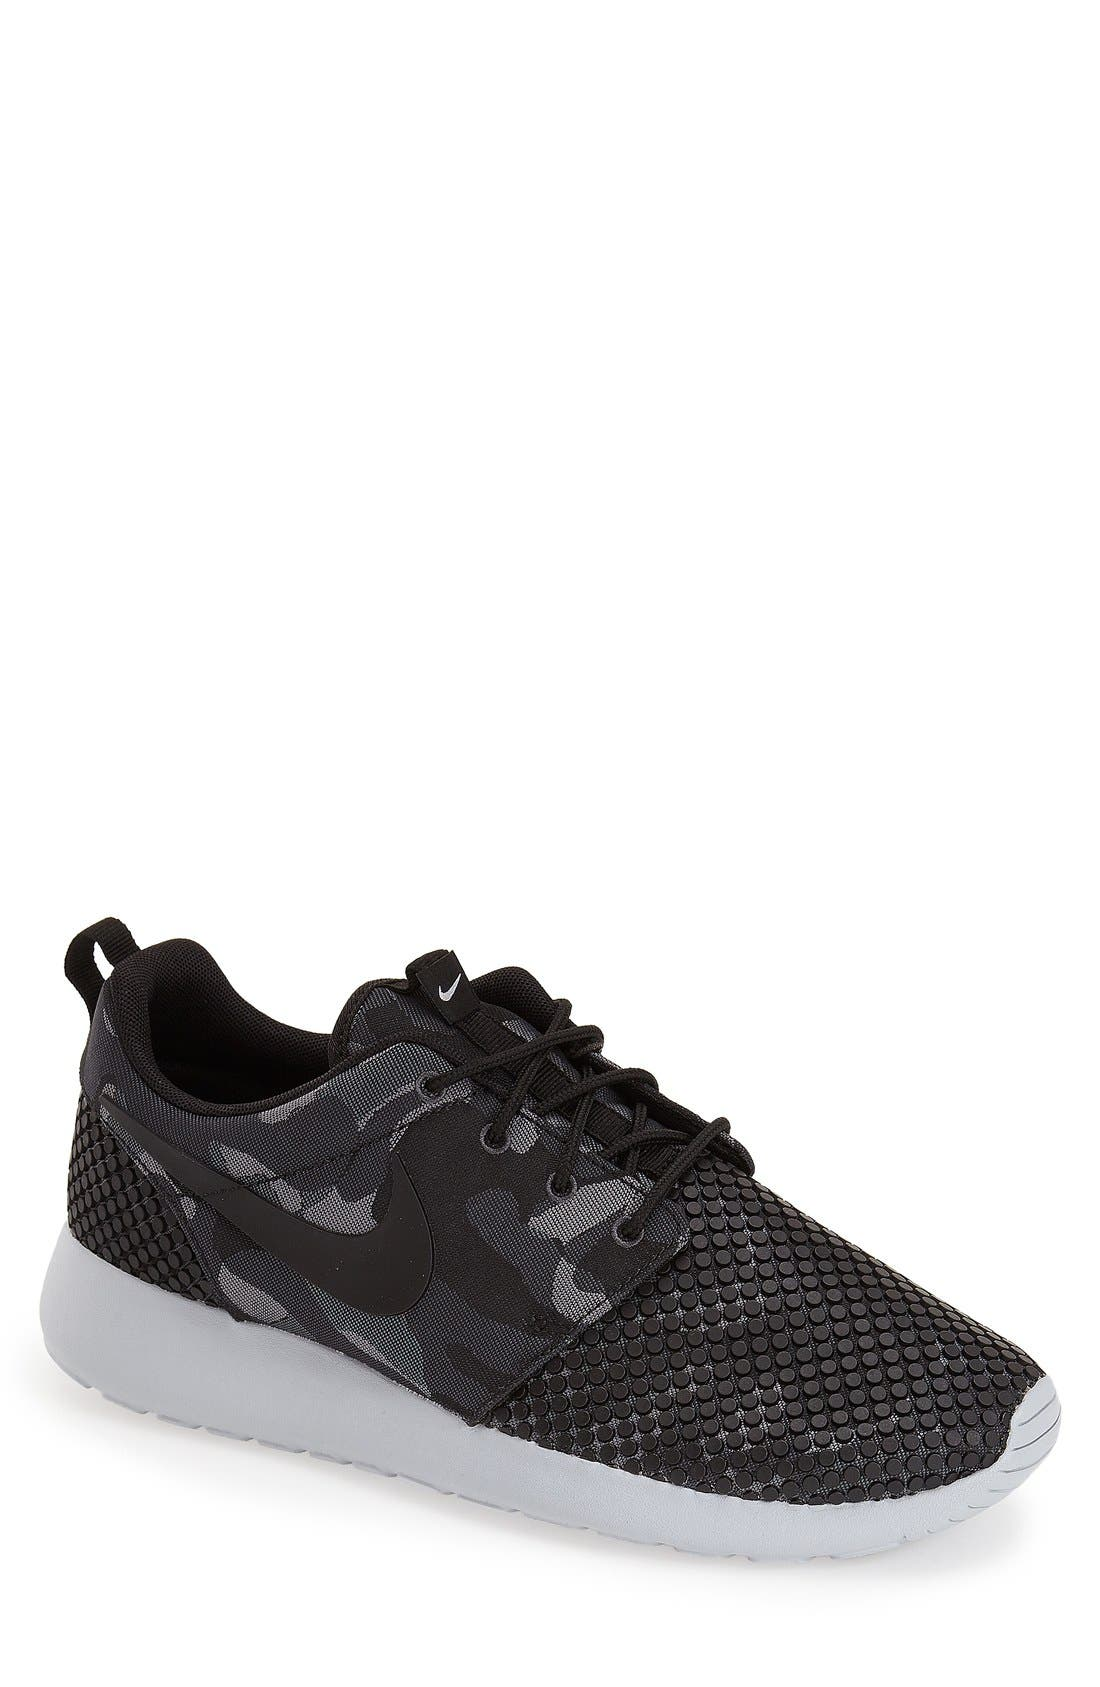 nike roshe one premium plus black and white comforter